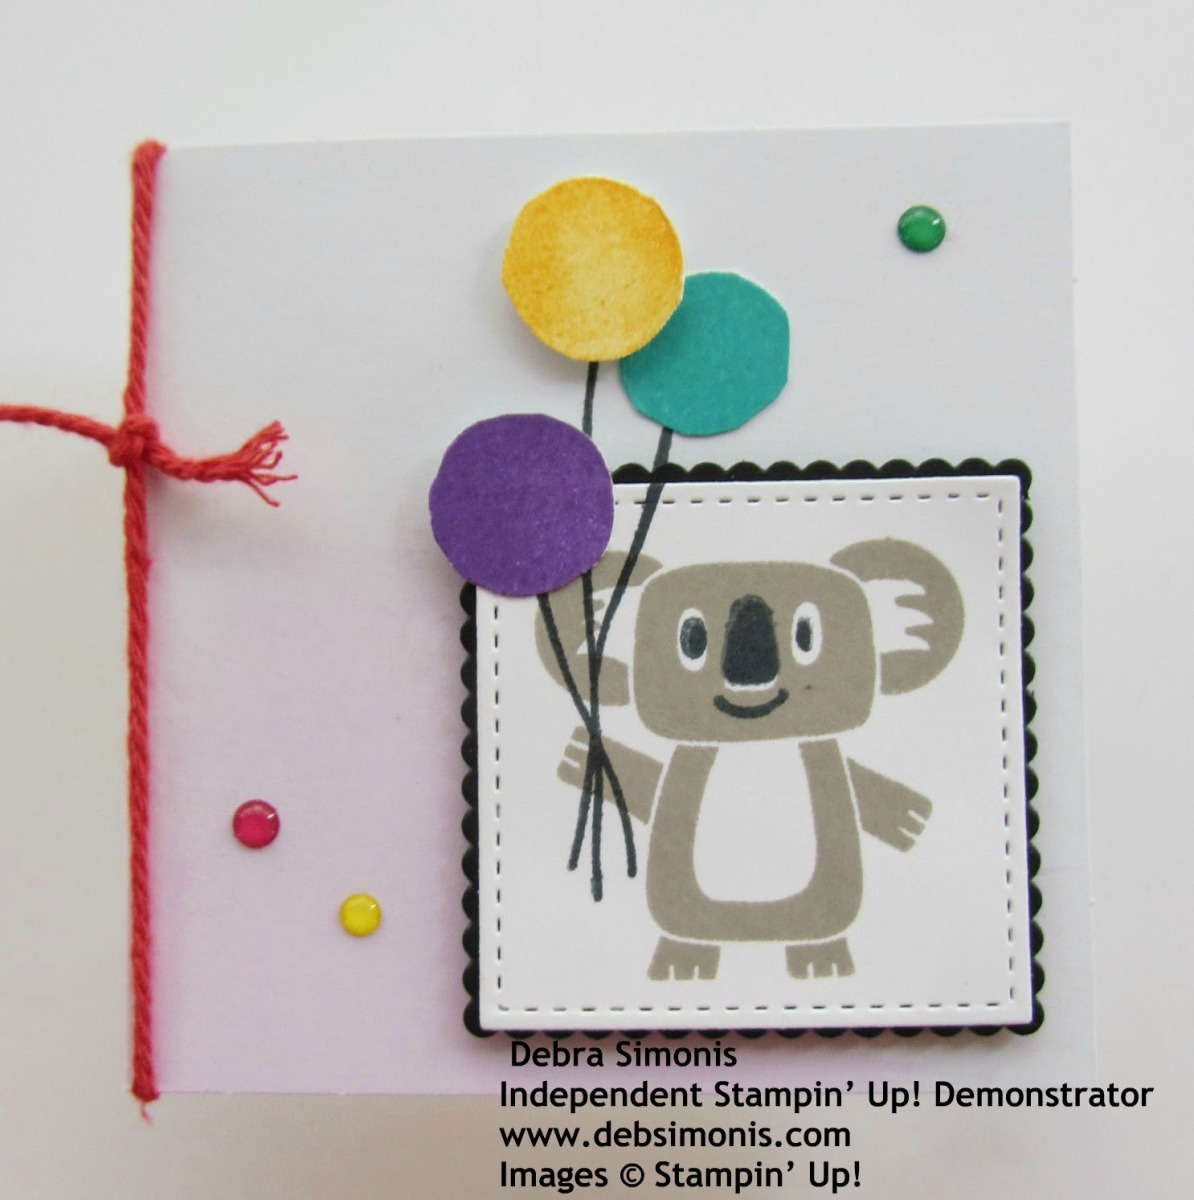 Stampin-Up-Birthday-Bonanza-3-x-3-Koala-Gift-Enclosure-Card-Stitched-Shapes-Dies-birthday-new-baby-Debra-Simonis-Stampinup